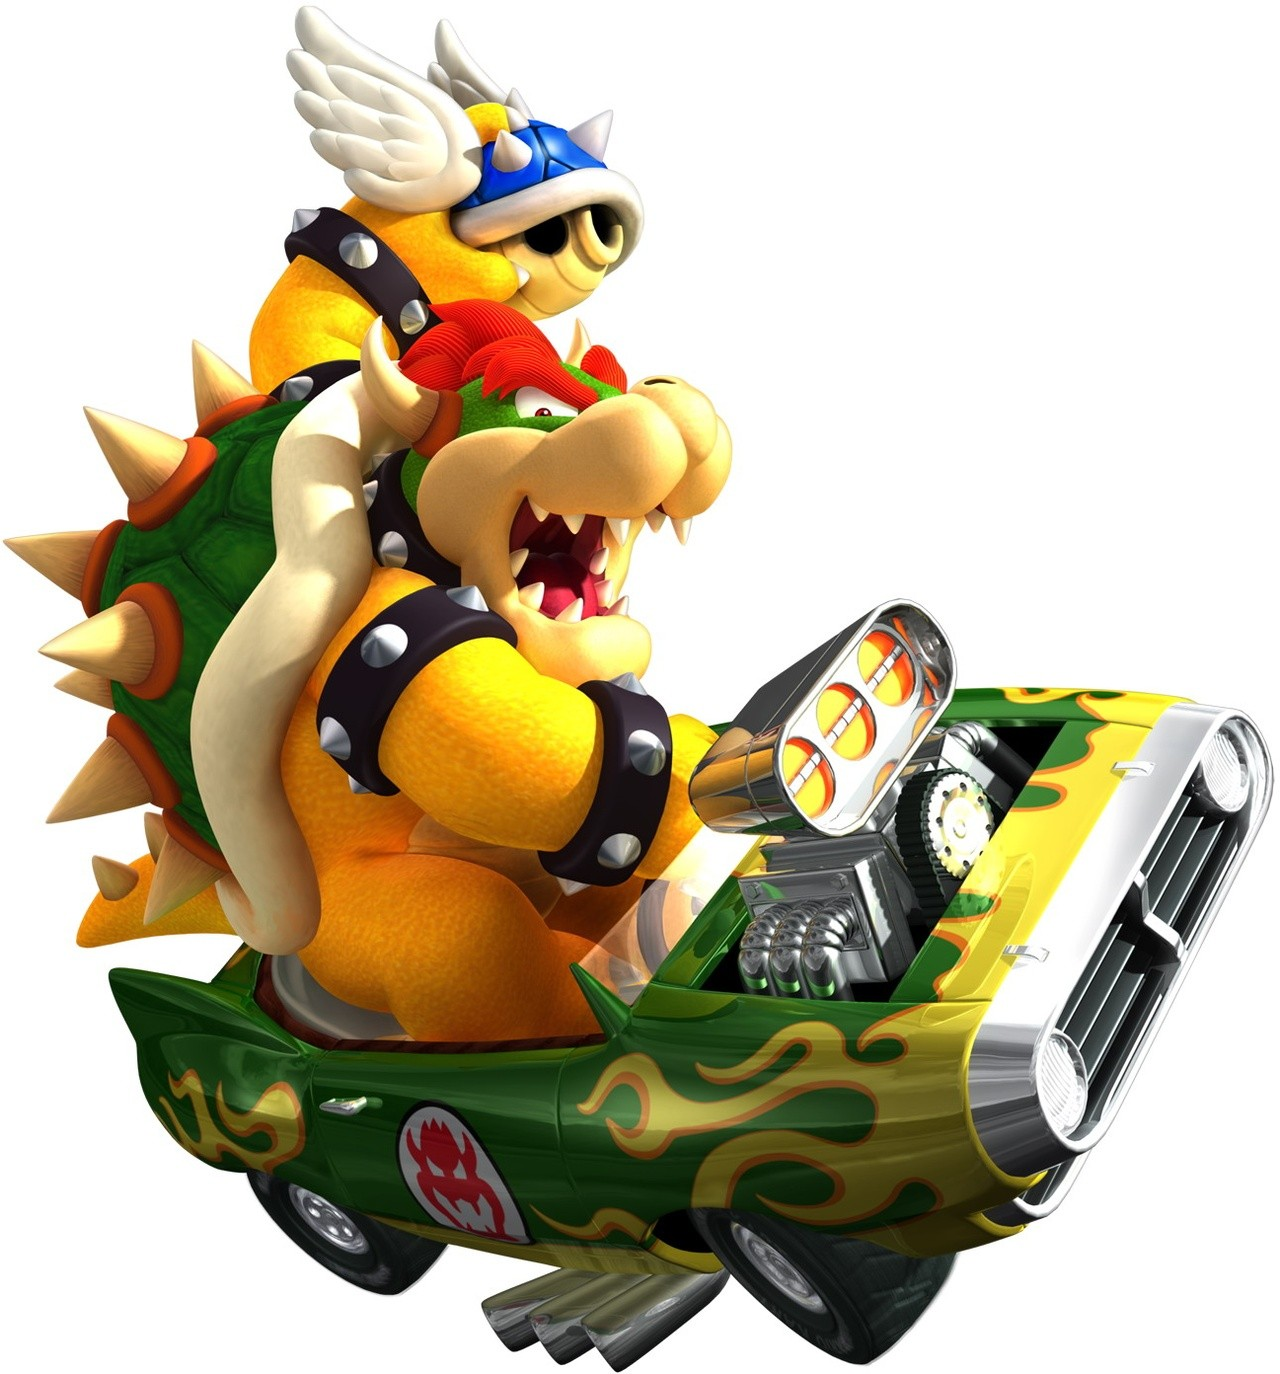 bowser mario kart racing wiki fandom powered by wikia. Black Bedroom Furniture Sets. Home Design Ideas